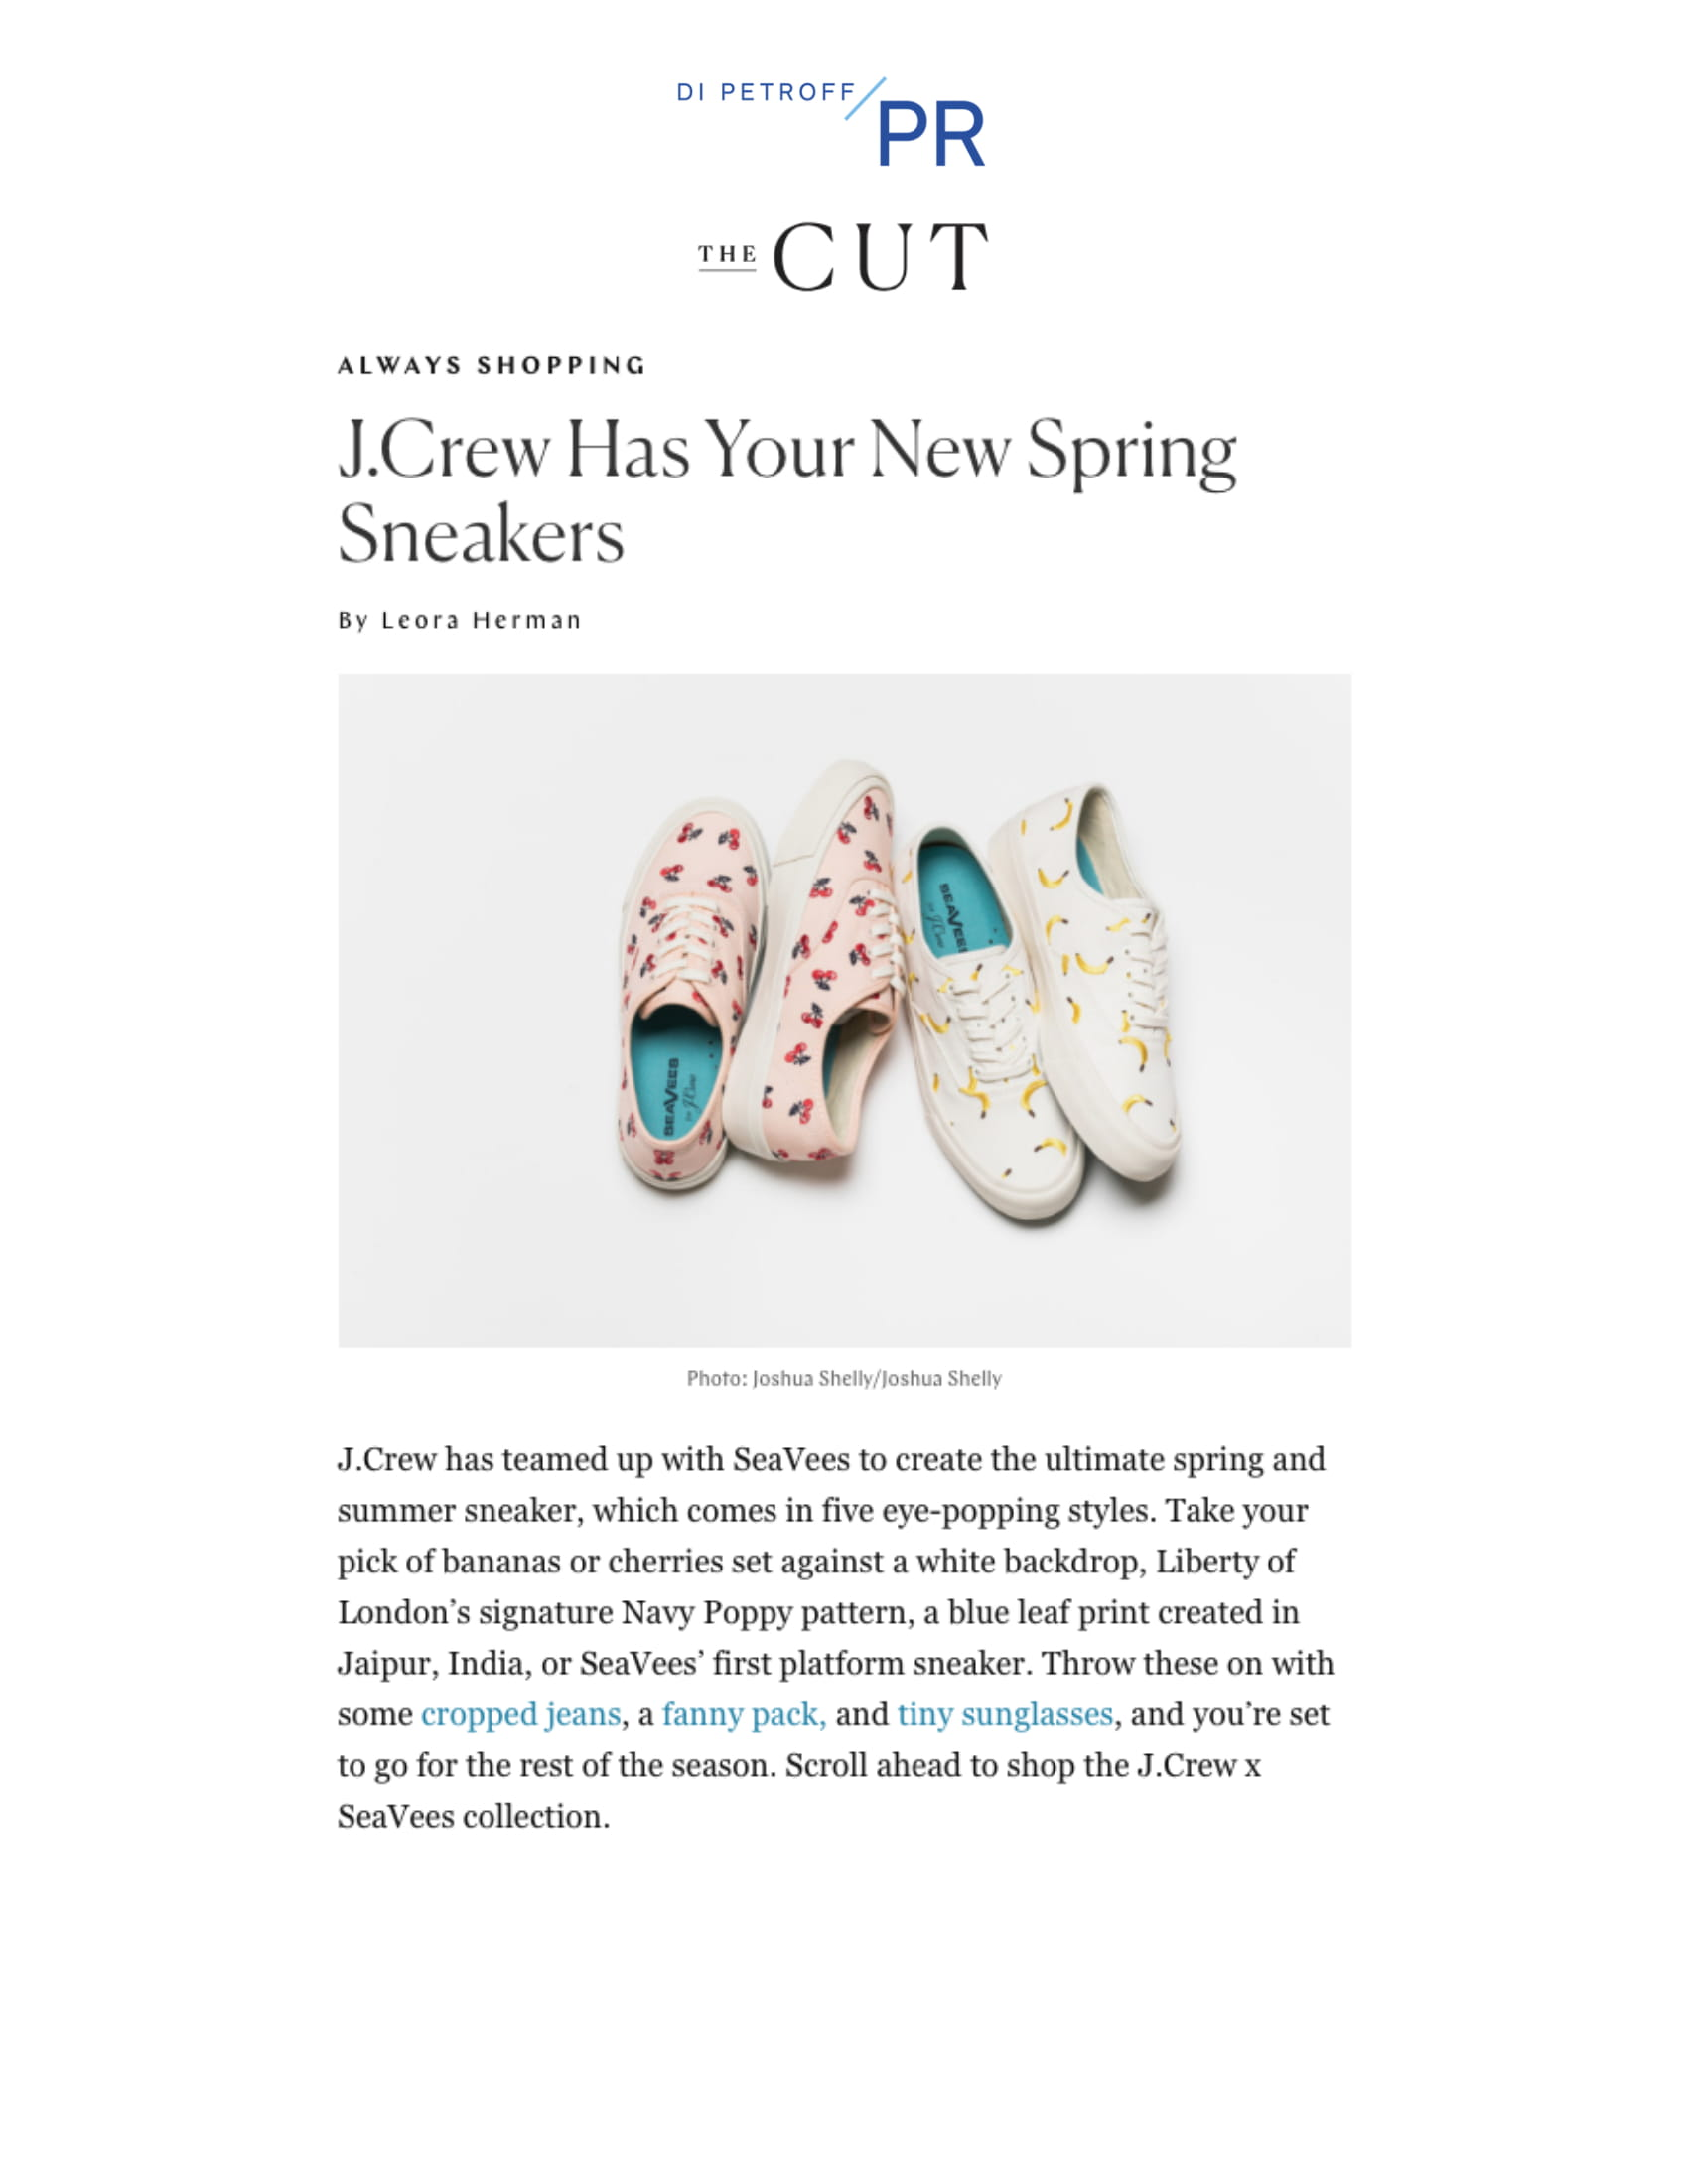 2018-04-24 NYMag.com The Cut SeaVees x J.Crew-1.jpg